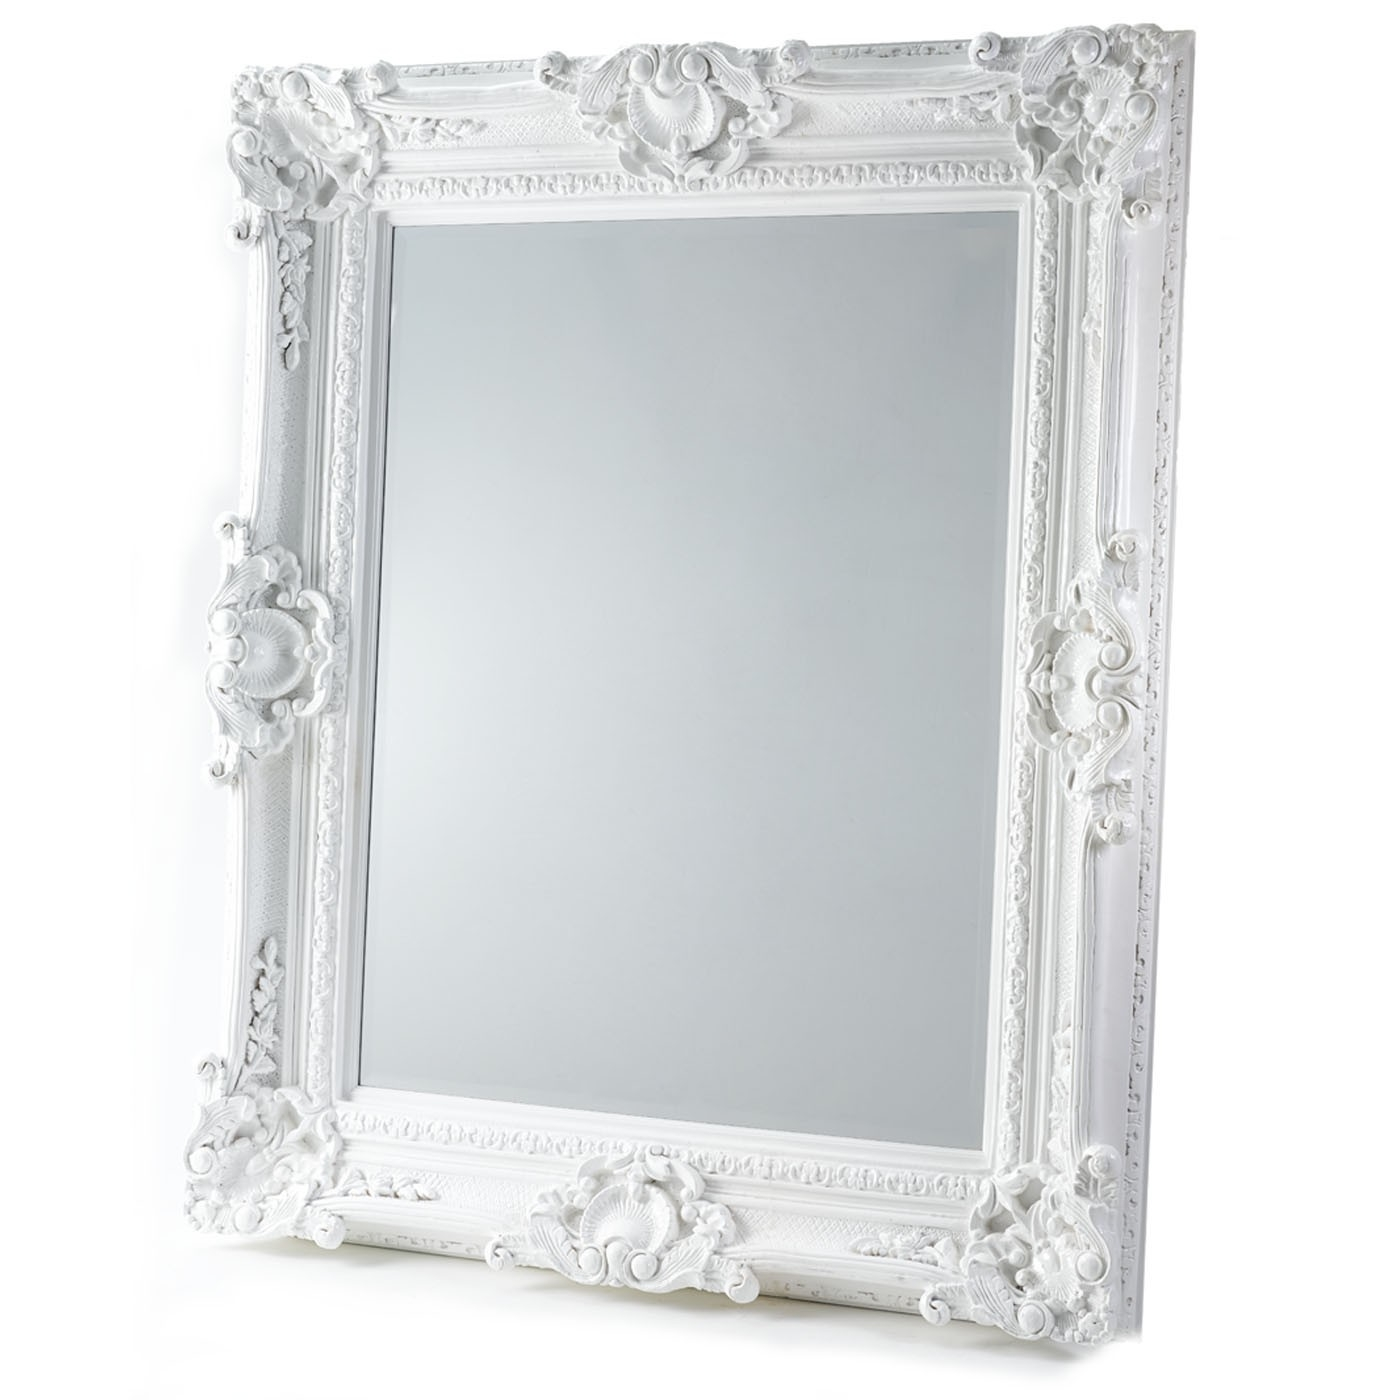 Large White Mirror Google Search Room Decor Pinterest Inside Baroque Mirror (View 14 of 15)